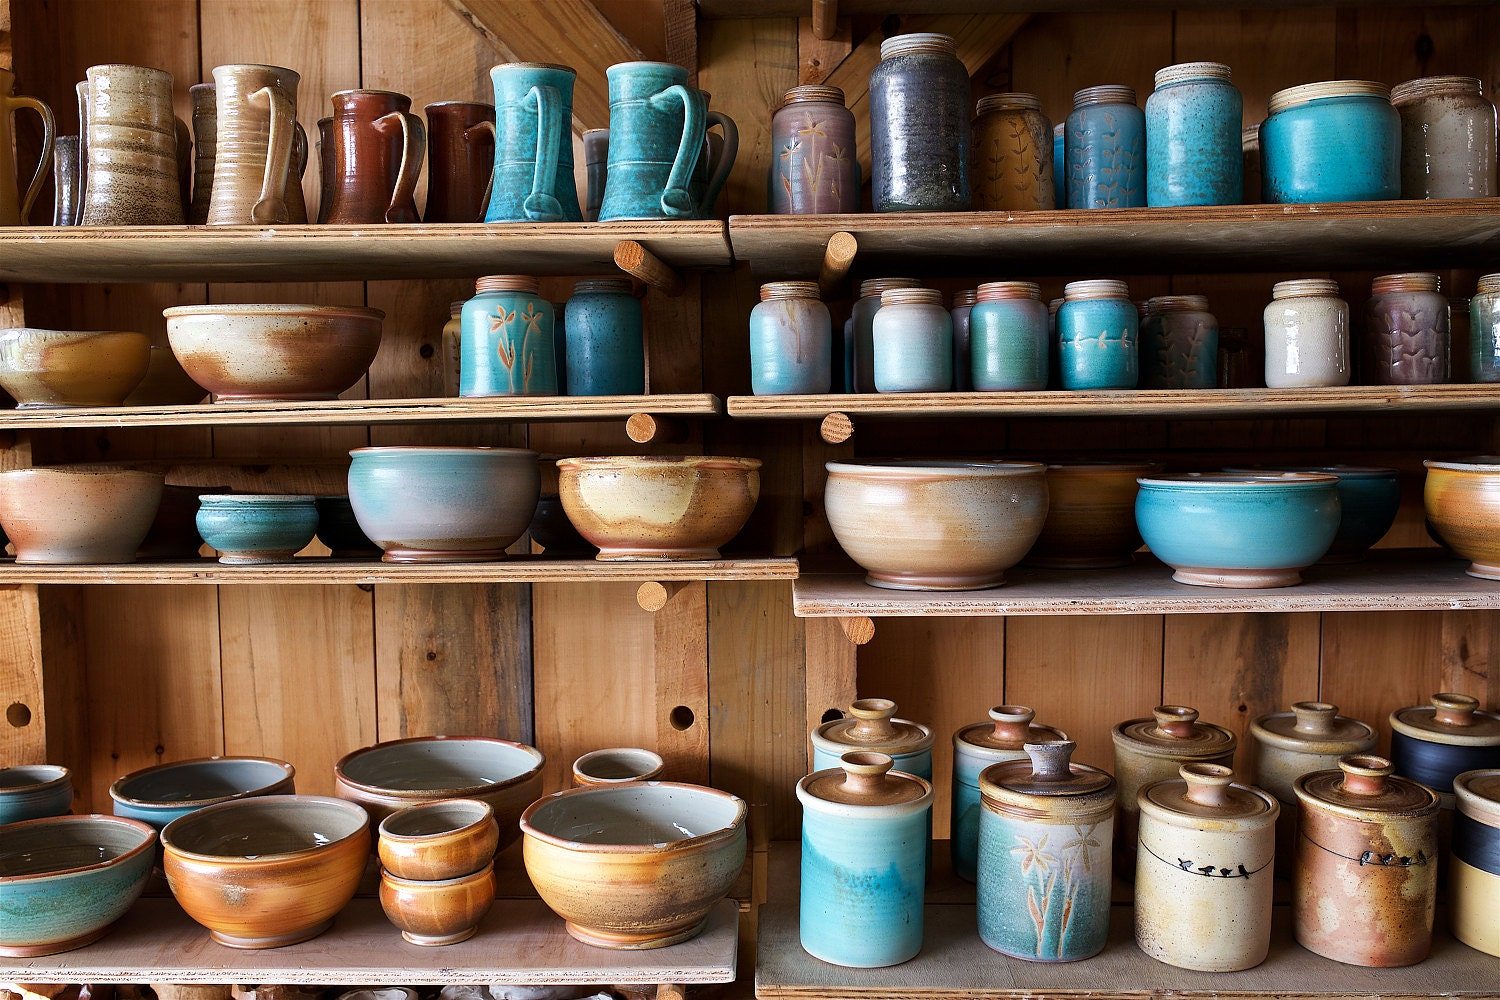 Wood-fired pottery